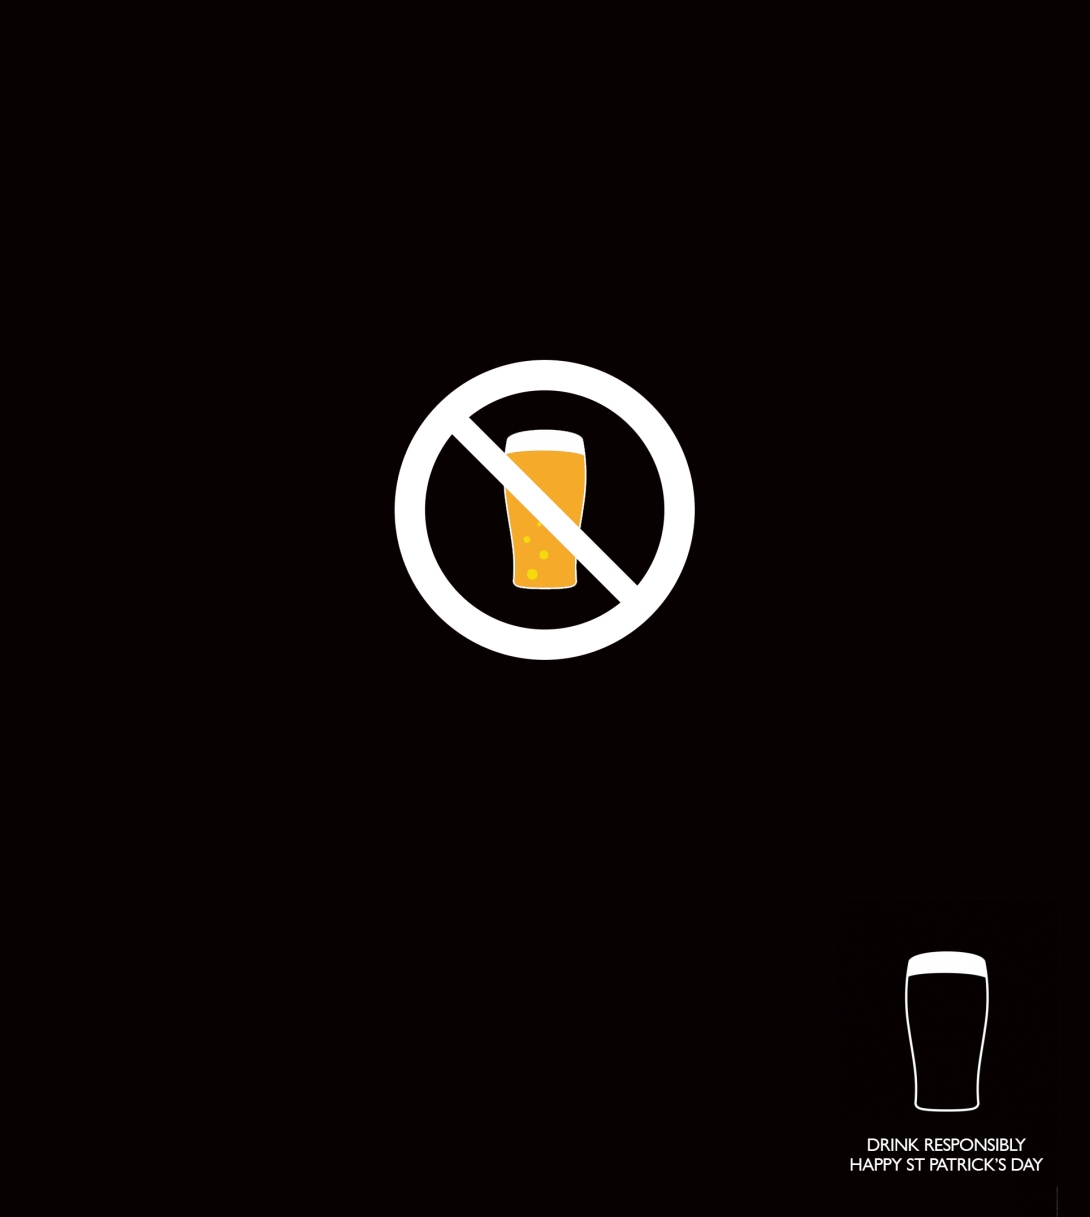 Advertising concept for St Patricks Day - drink responsibly